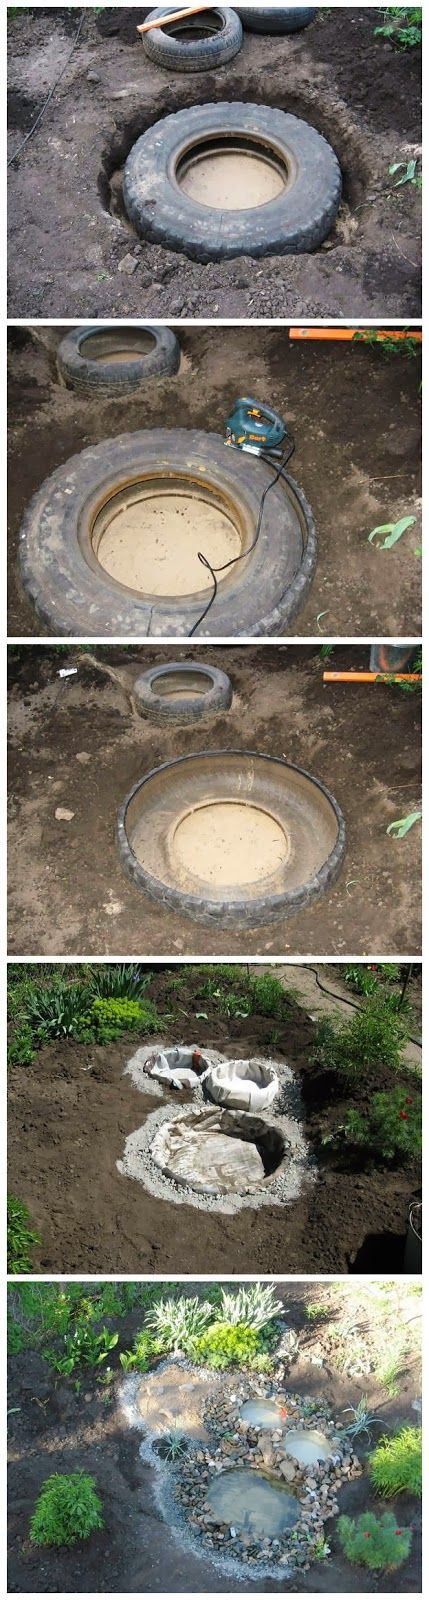 Recycled Tires Pond – you could make it look like a T-rex foot print if you have